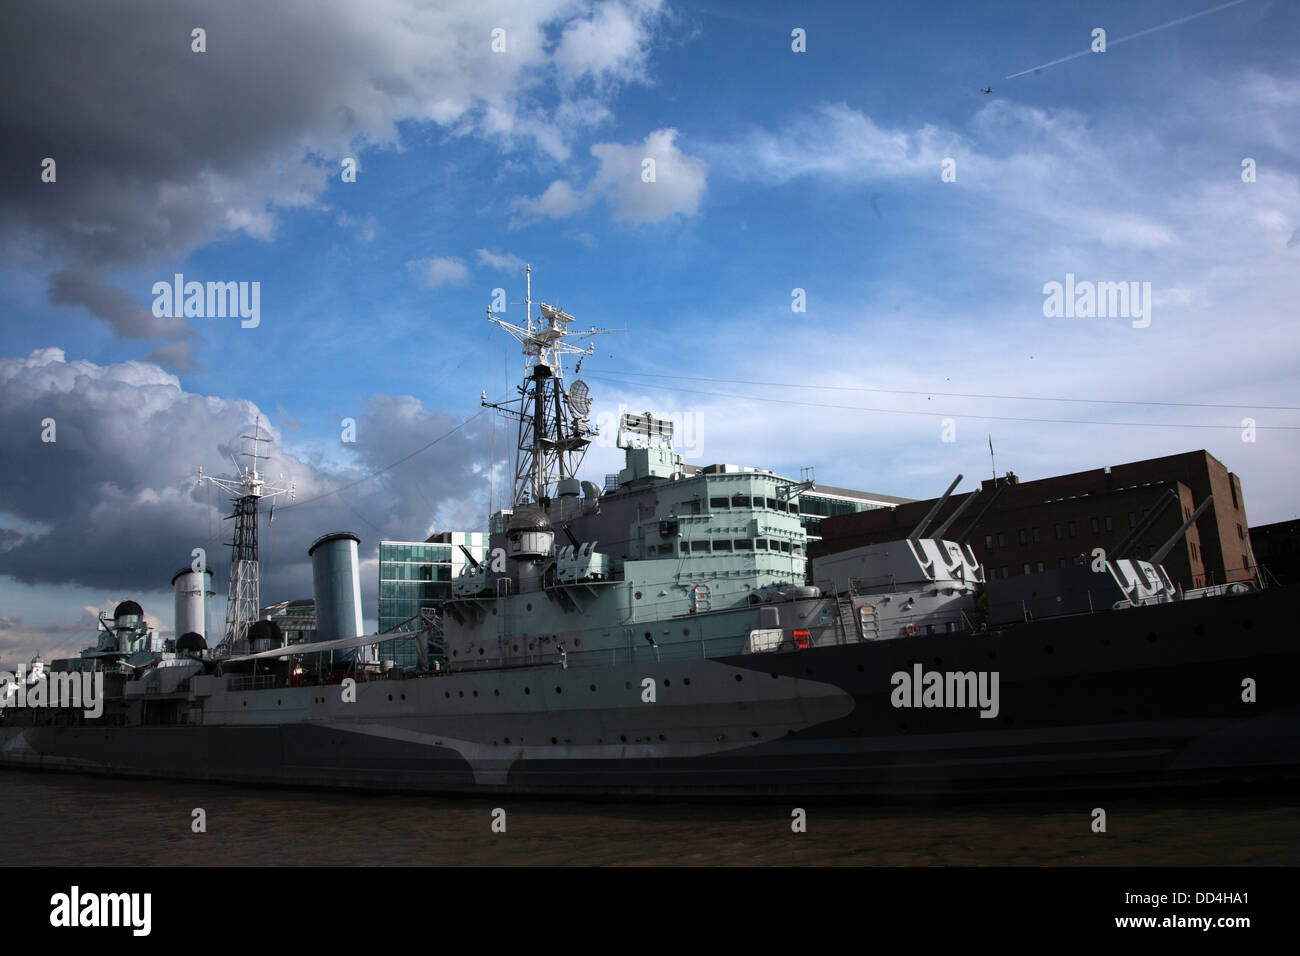 Moody image of the HMS Belfast, moored on the Thames river, London, South East England, UK - Stock Image